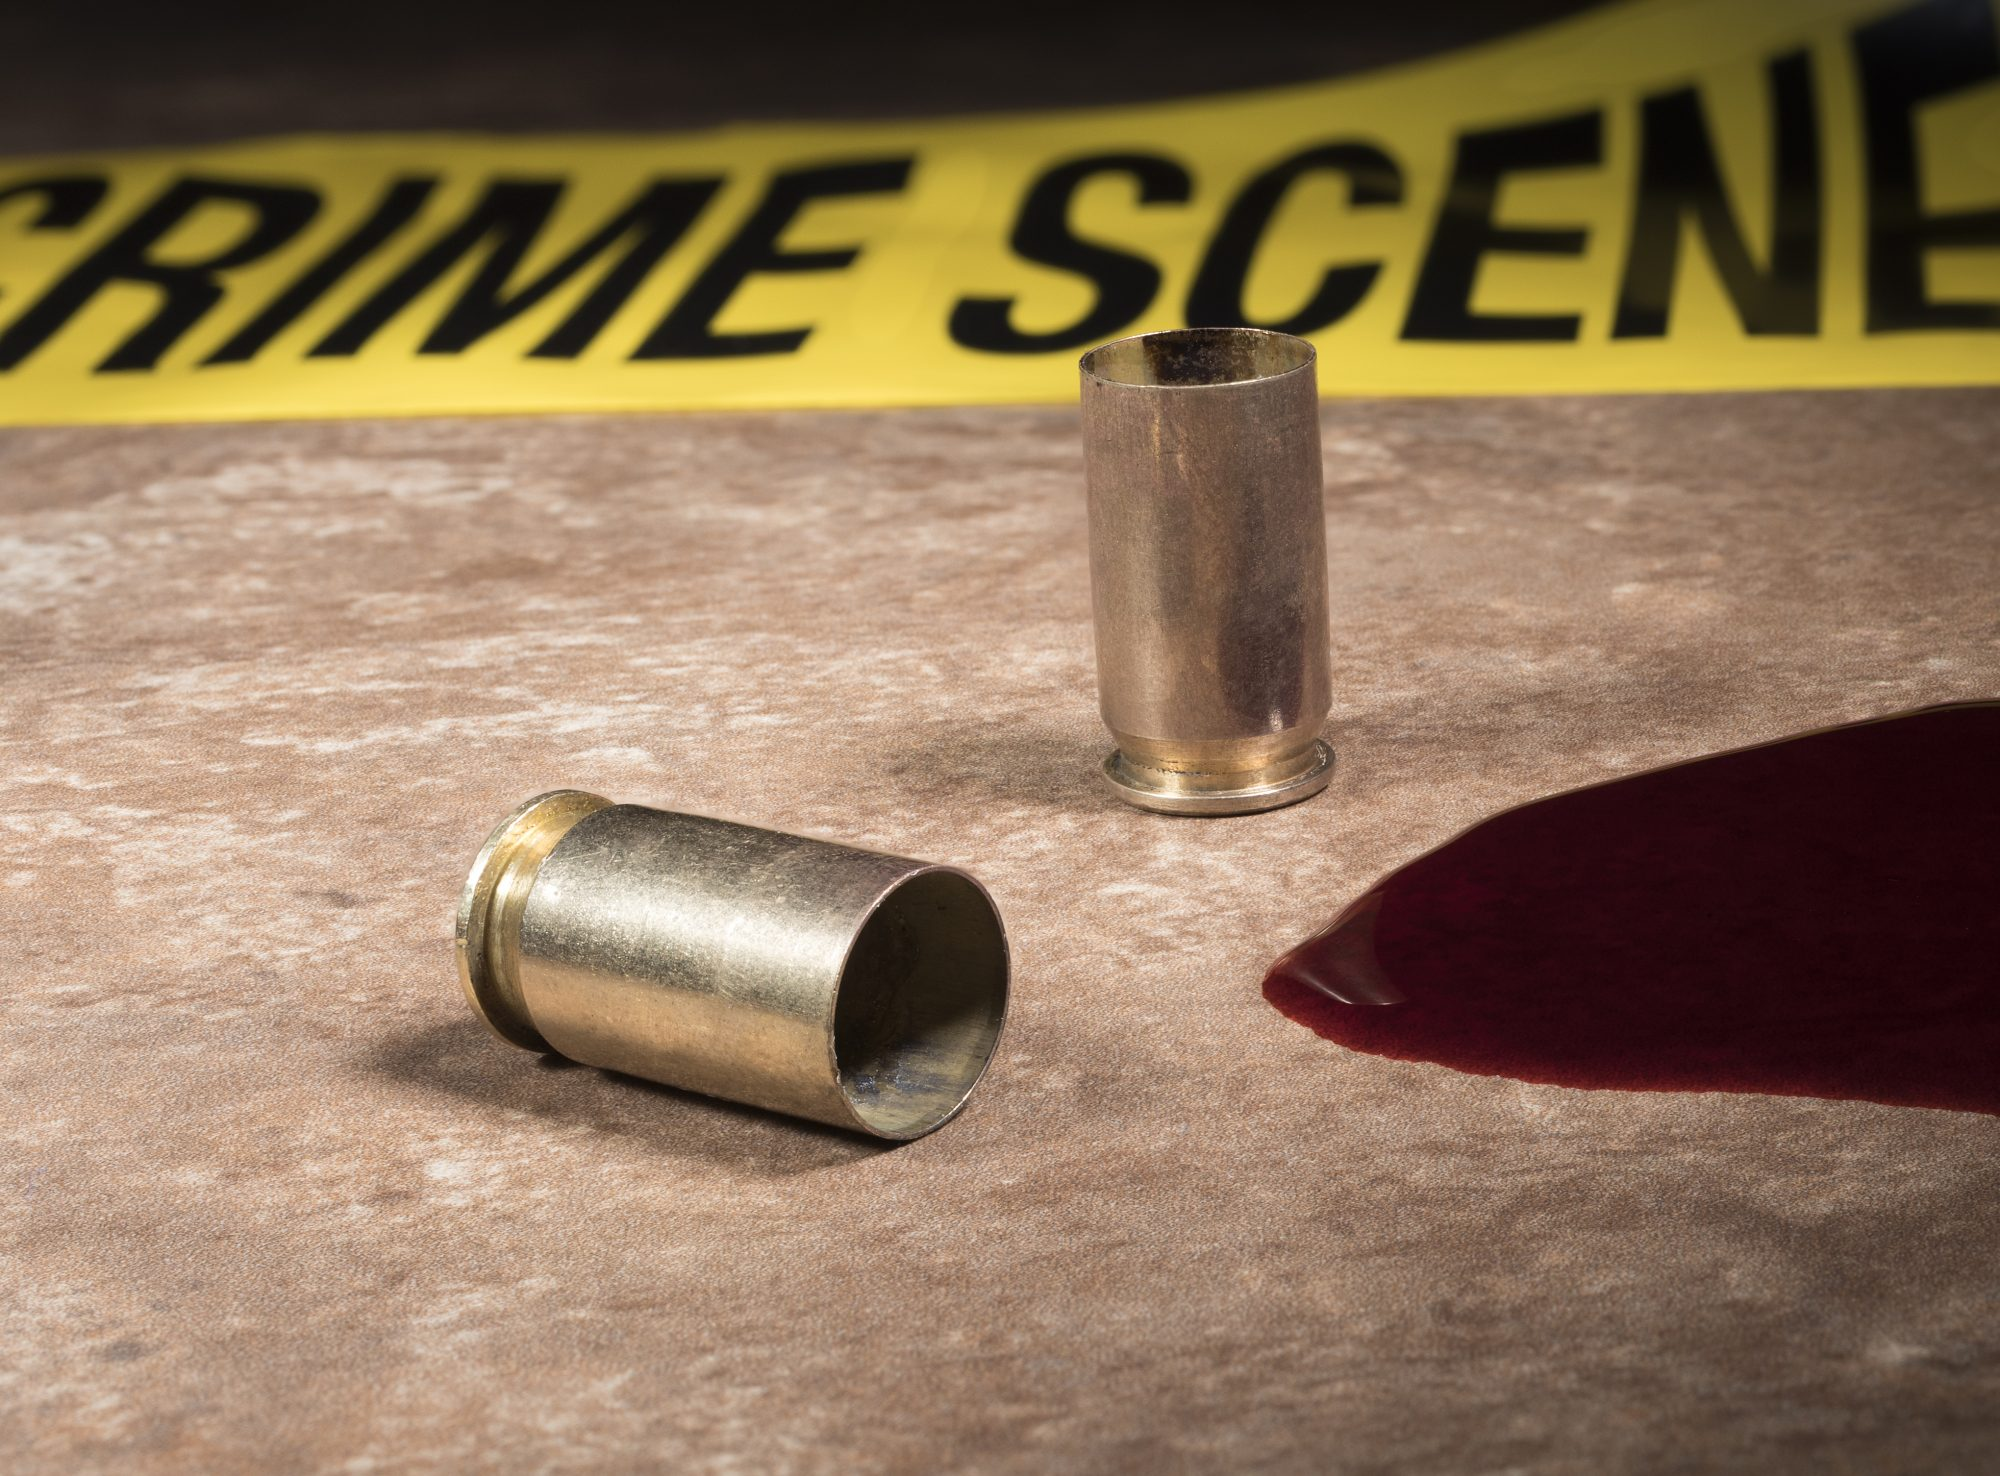 Handgun brass with blood and police tape